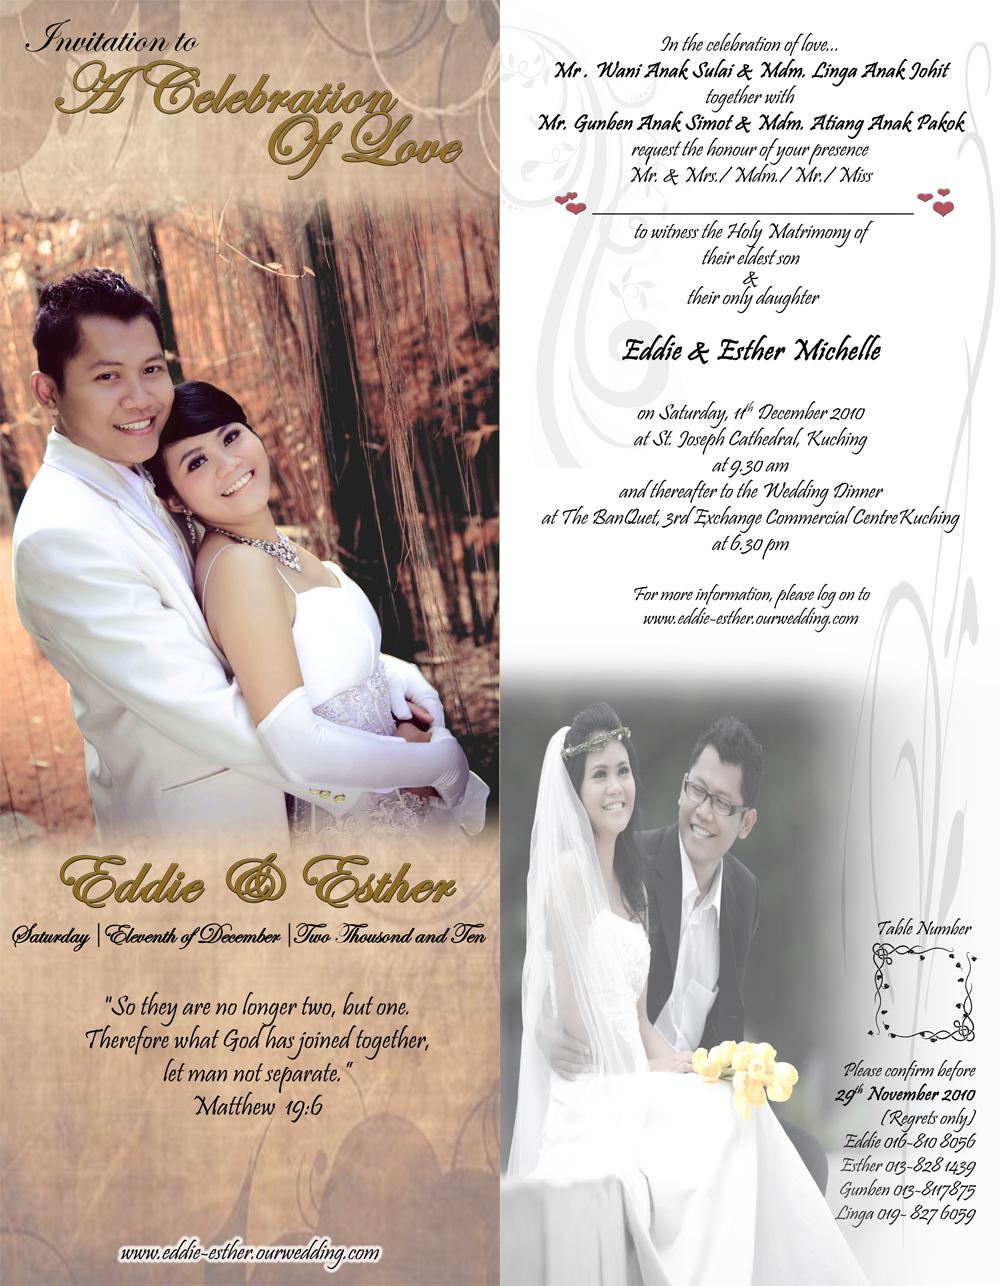 Blisssss wedding invi card our wedding invitation cardedess masterpiece stopboris Image collections